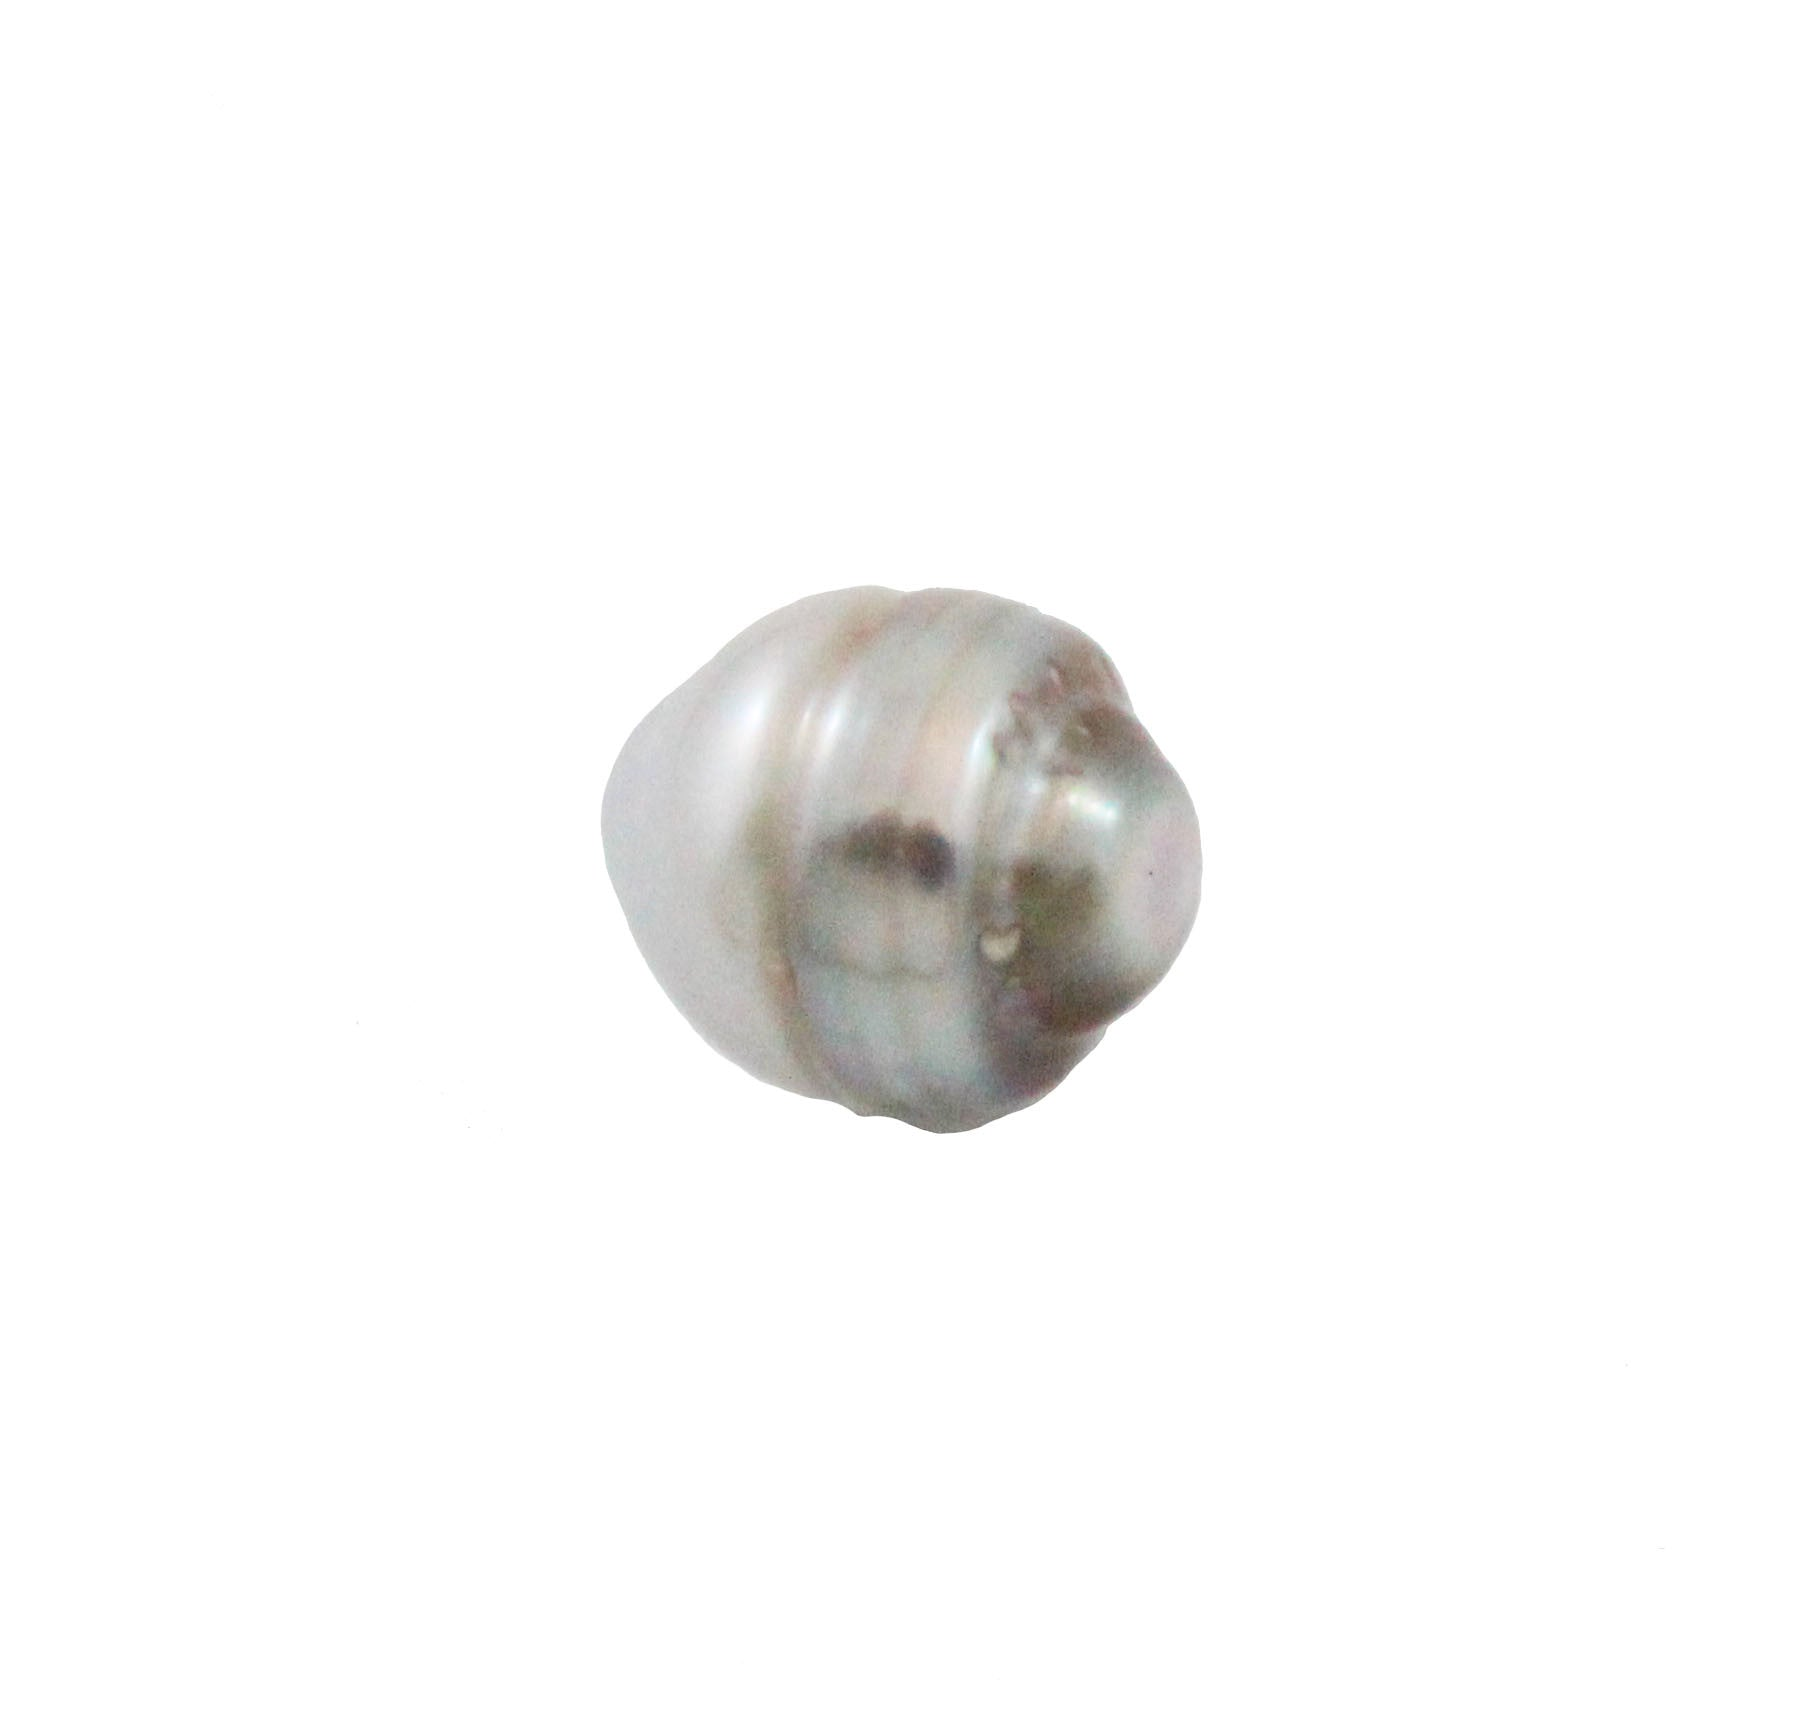 Tahitian pearl undrilled 0.98gr mm 10.14x8.34mm - Purchase only with custom order - Sarah Hughes - 6